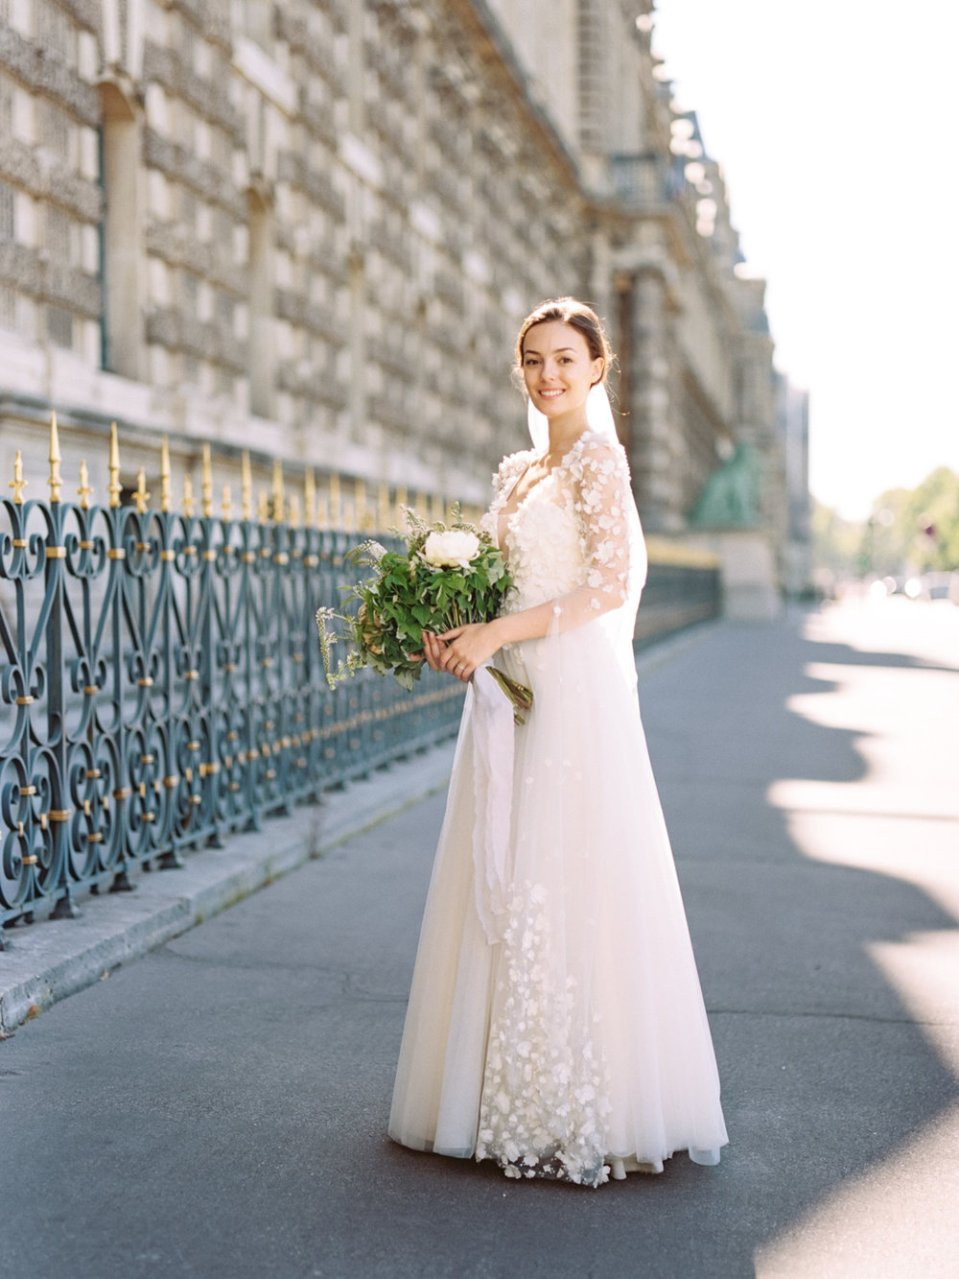 Destination Fine Art Wedding Editorial Photography in Paris with Max Chaoul -32.jpg